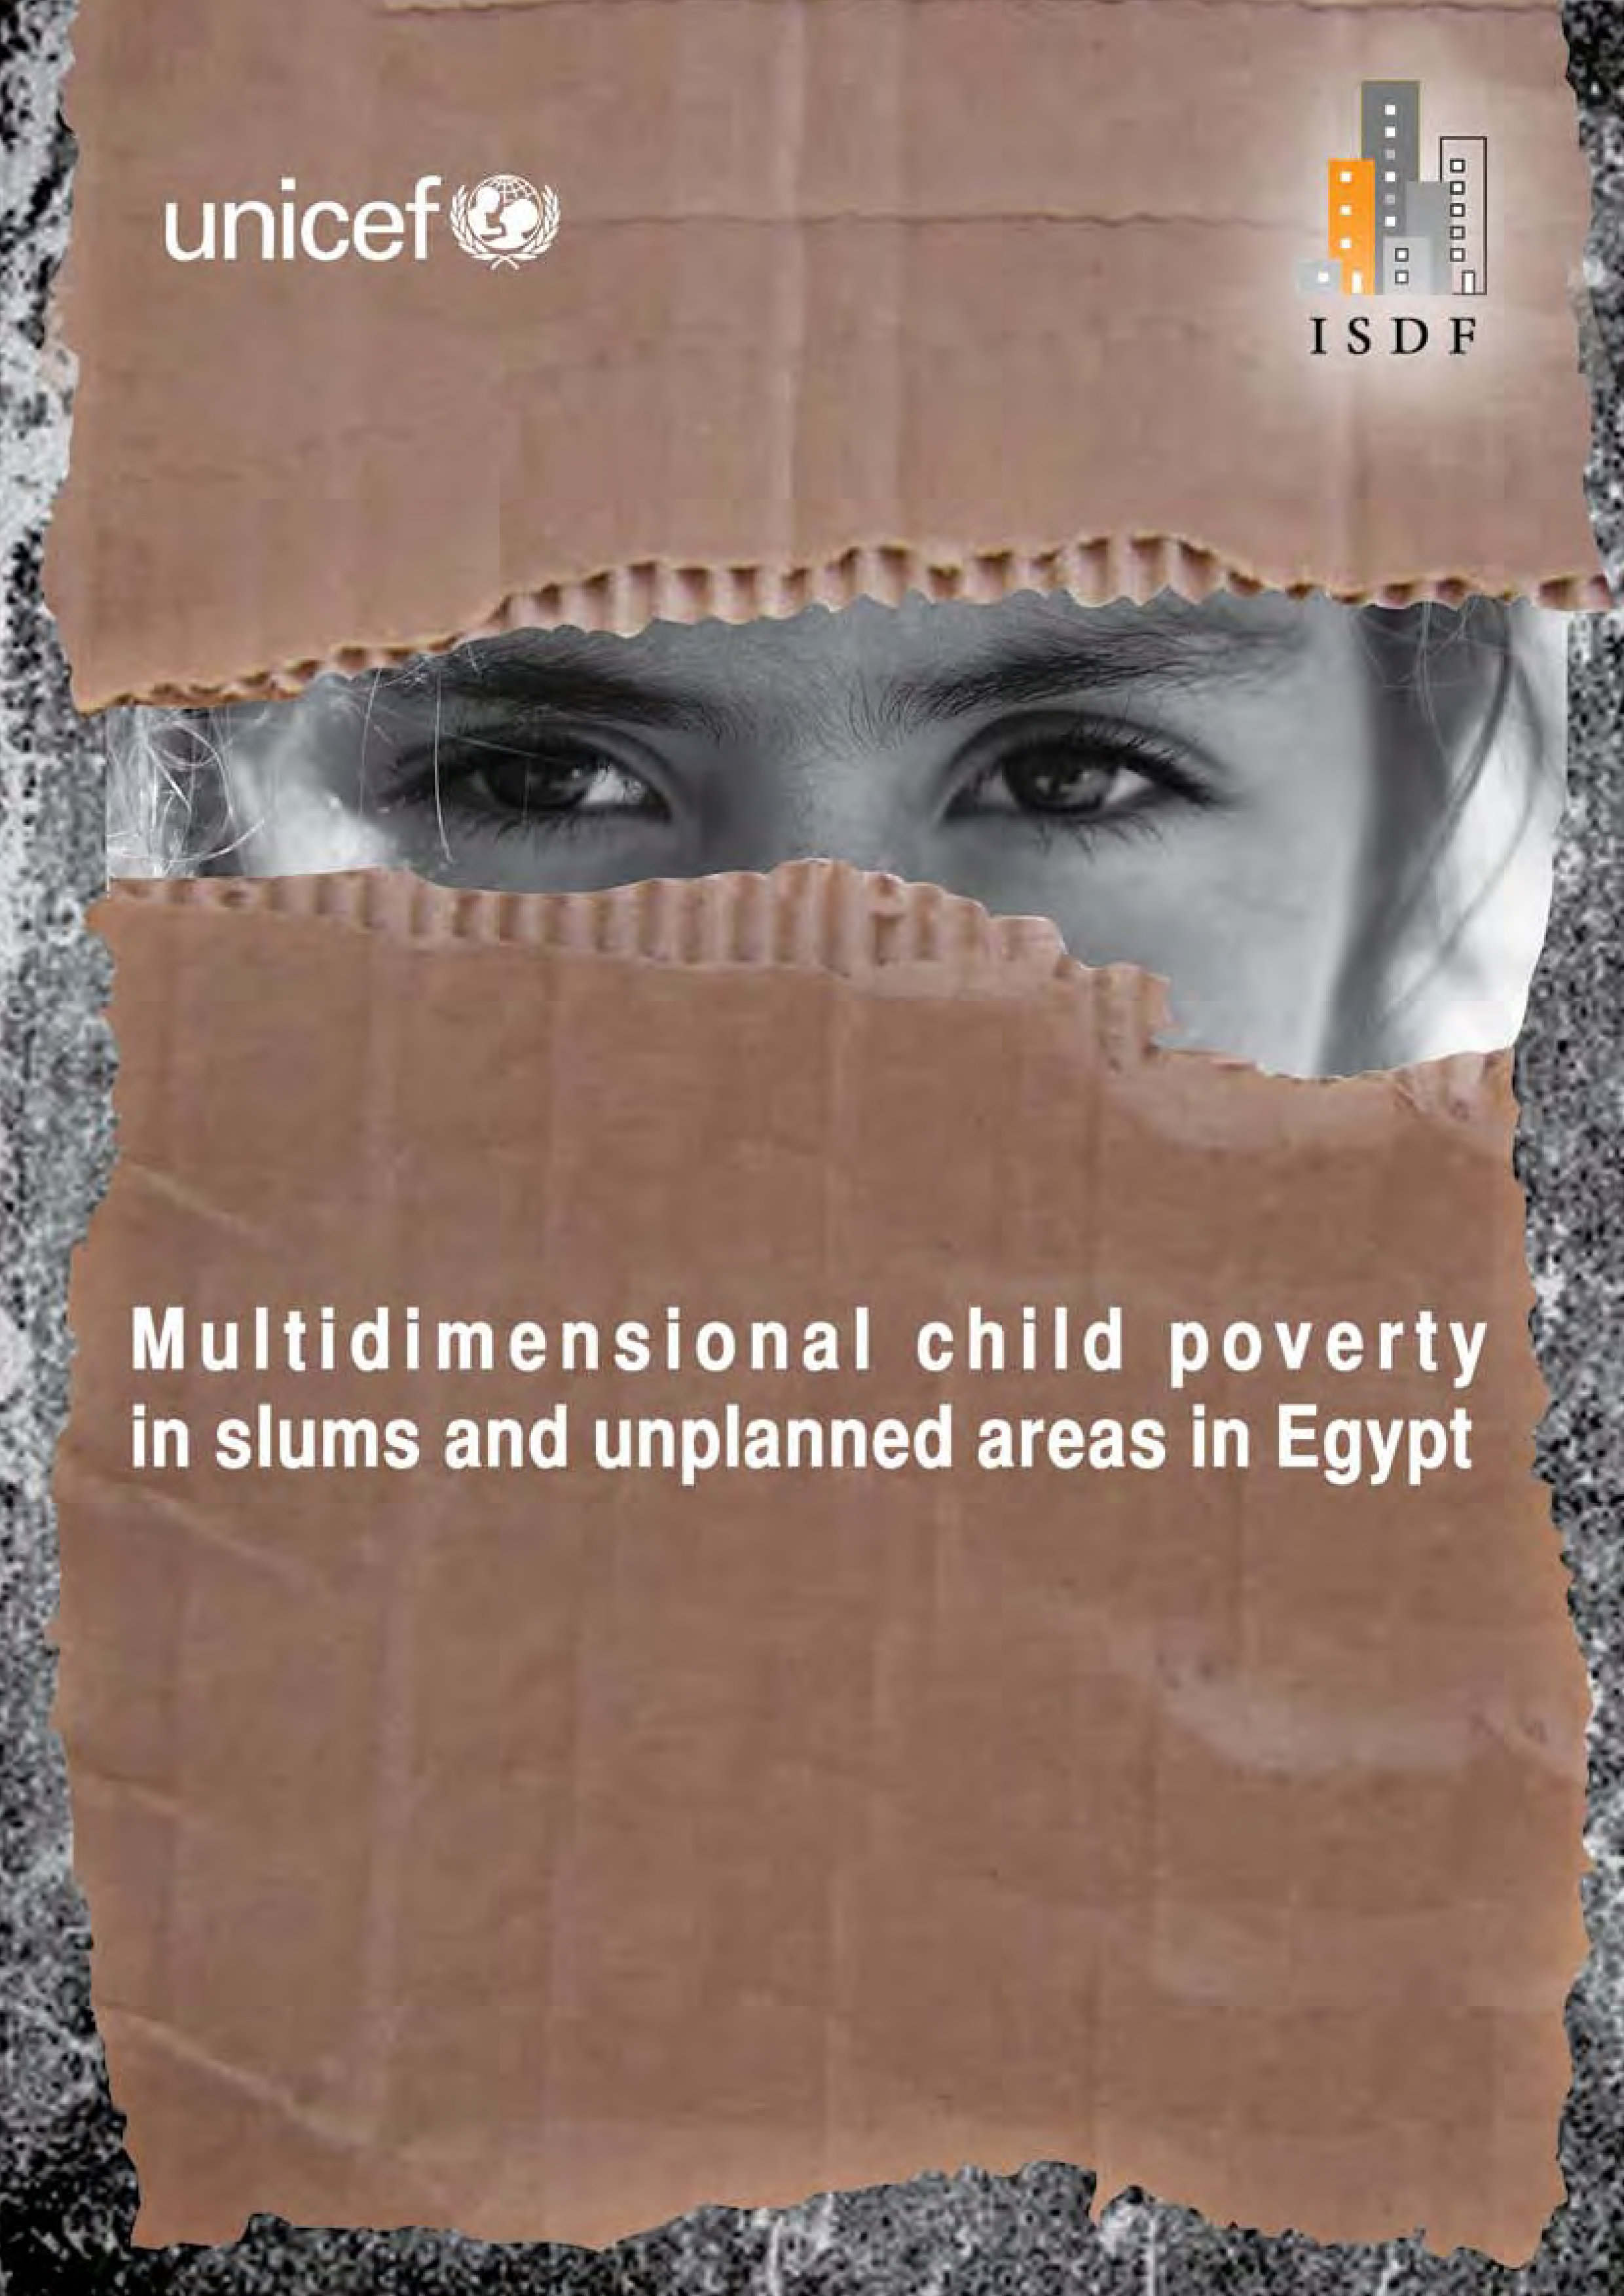 Multi-dimensional child poverty in slums and unplanned areas in Egypt